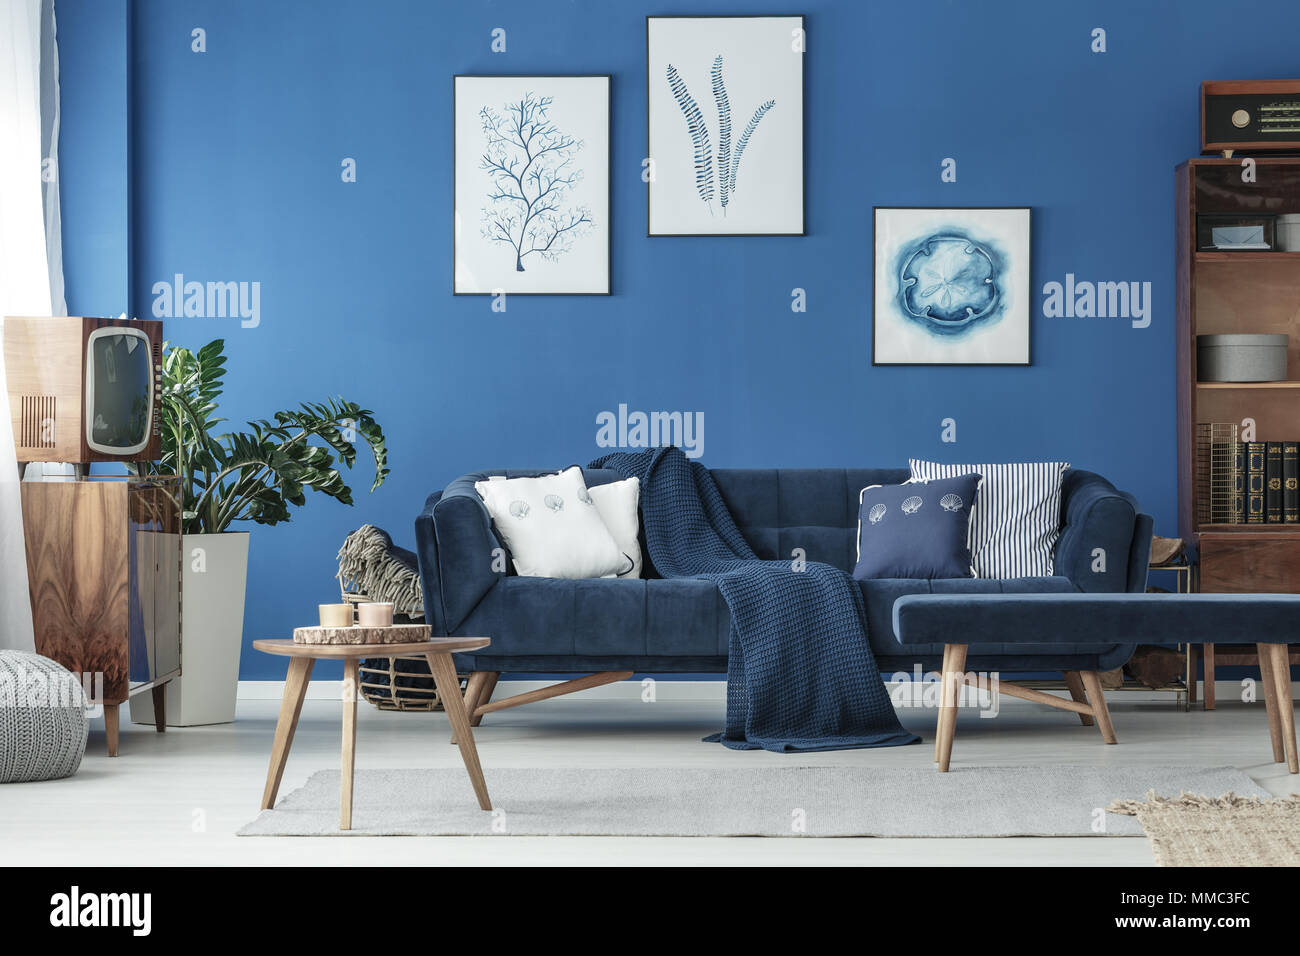 Cyan Interior Design High Resolution Stock Photography And Images Alamy